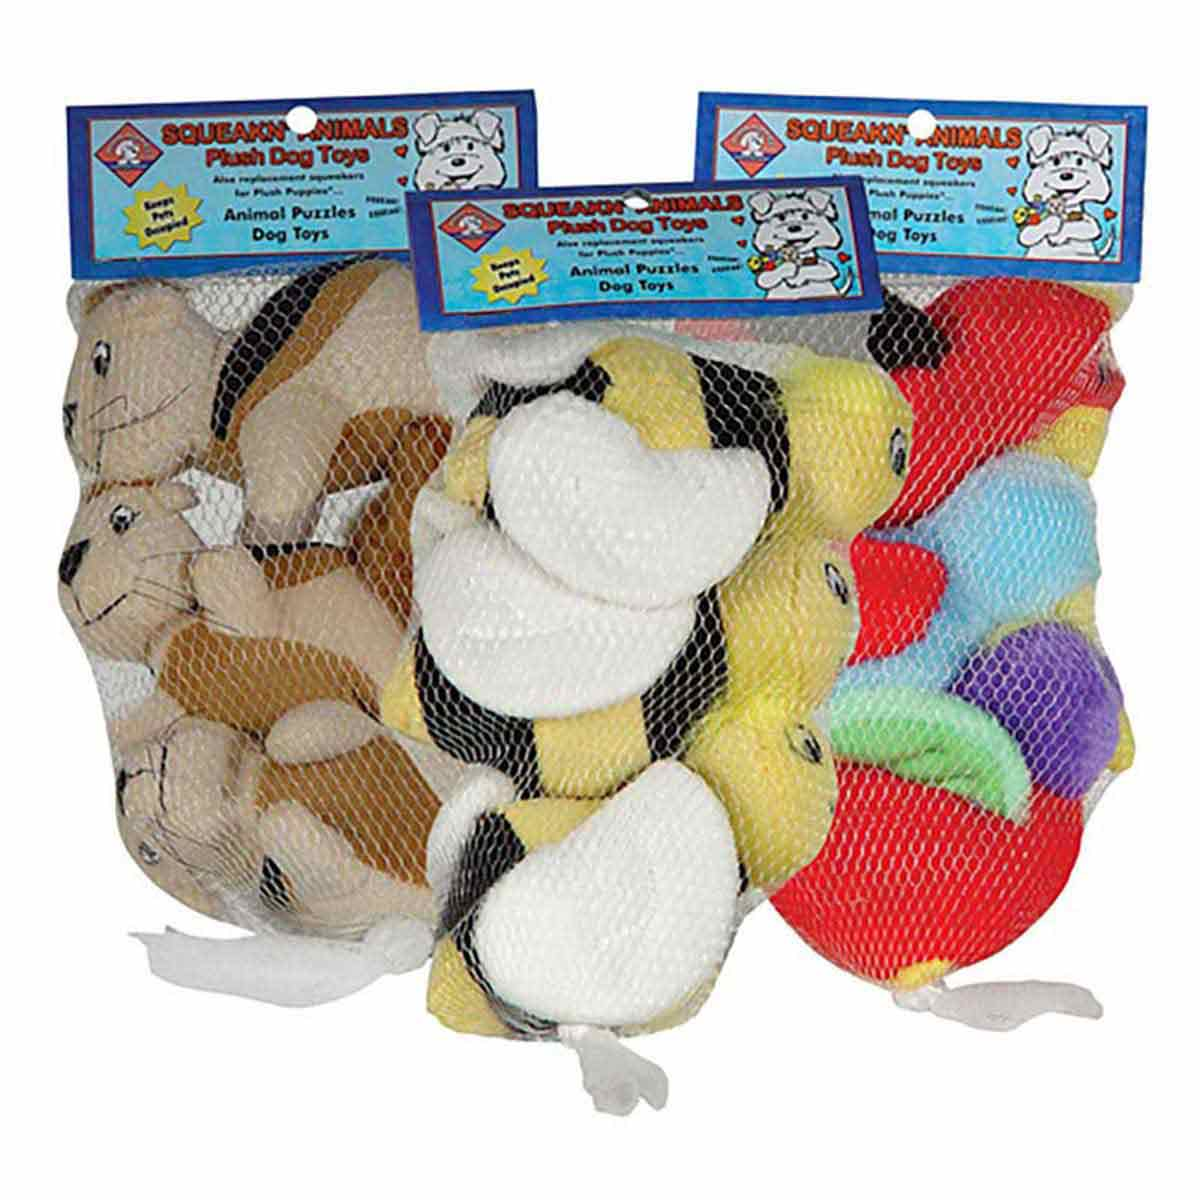 Outward Hound Squeakin' Animals 3 Pack Bees for Puzzle Dog Toys